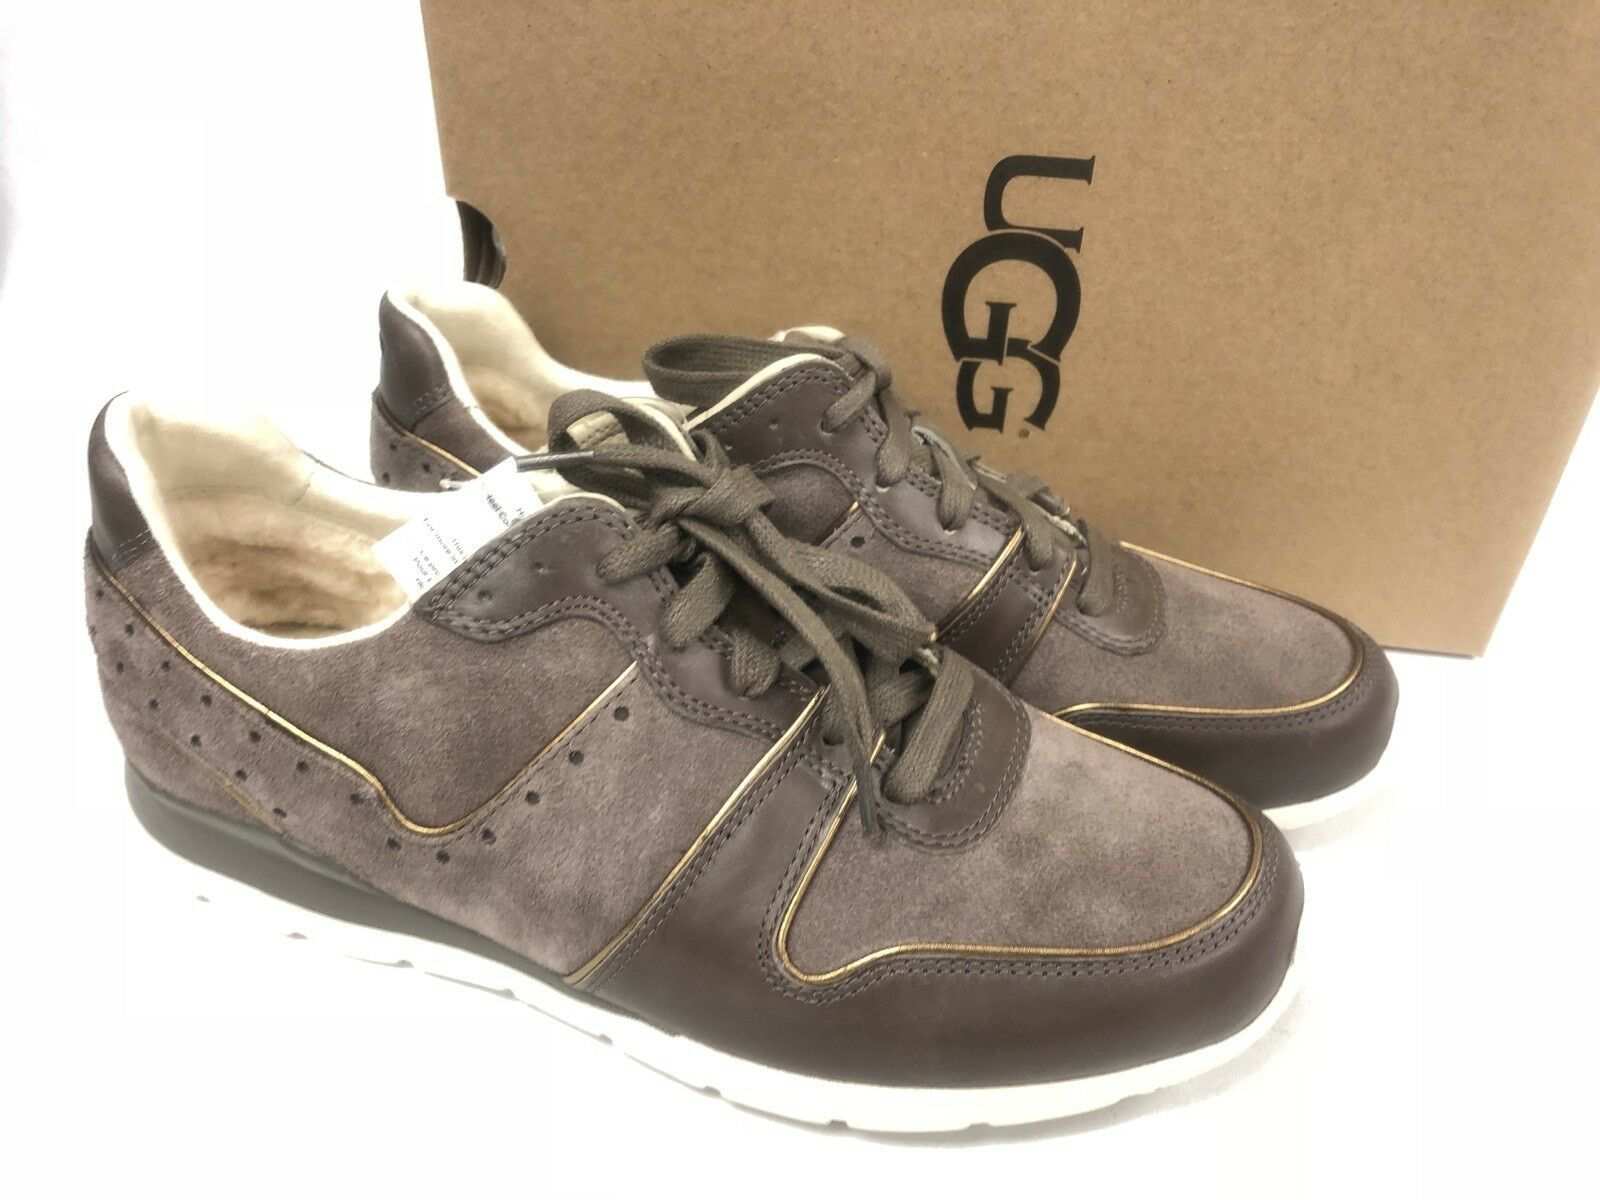 Ugg Australia Deaven Mouse Gold Suede Lace Up Shoes Tennis Sneakers 1019655